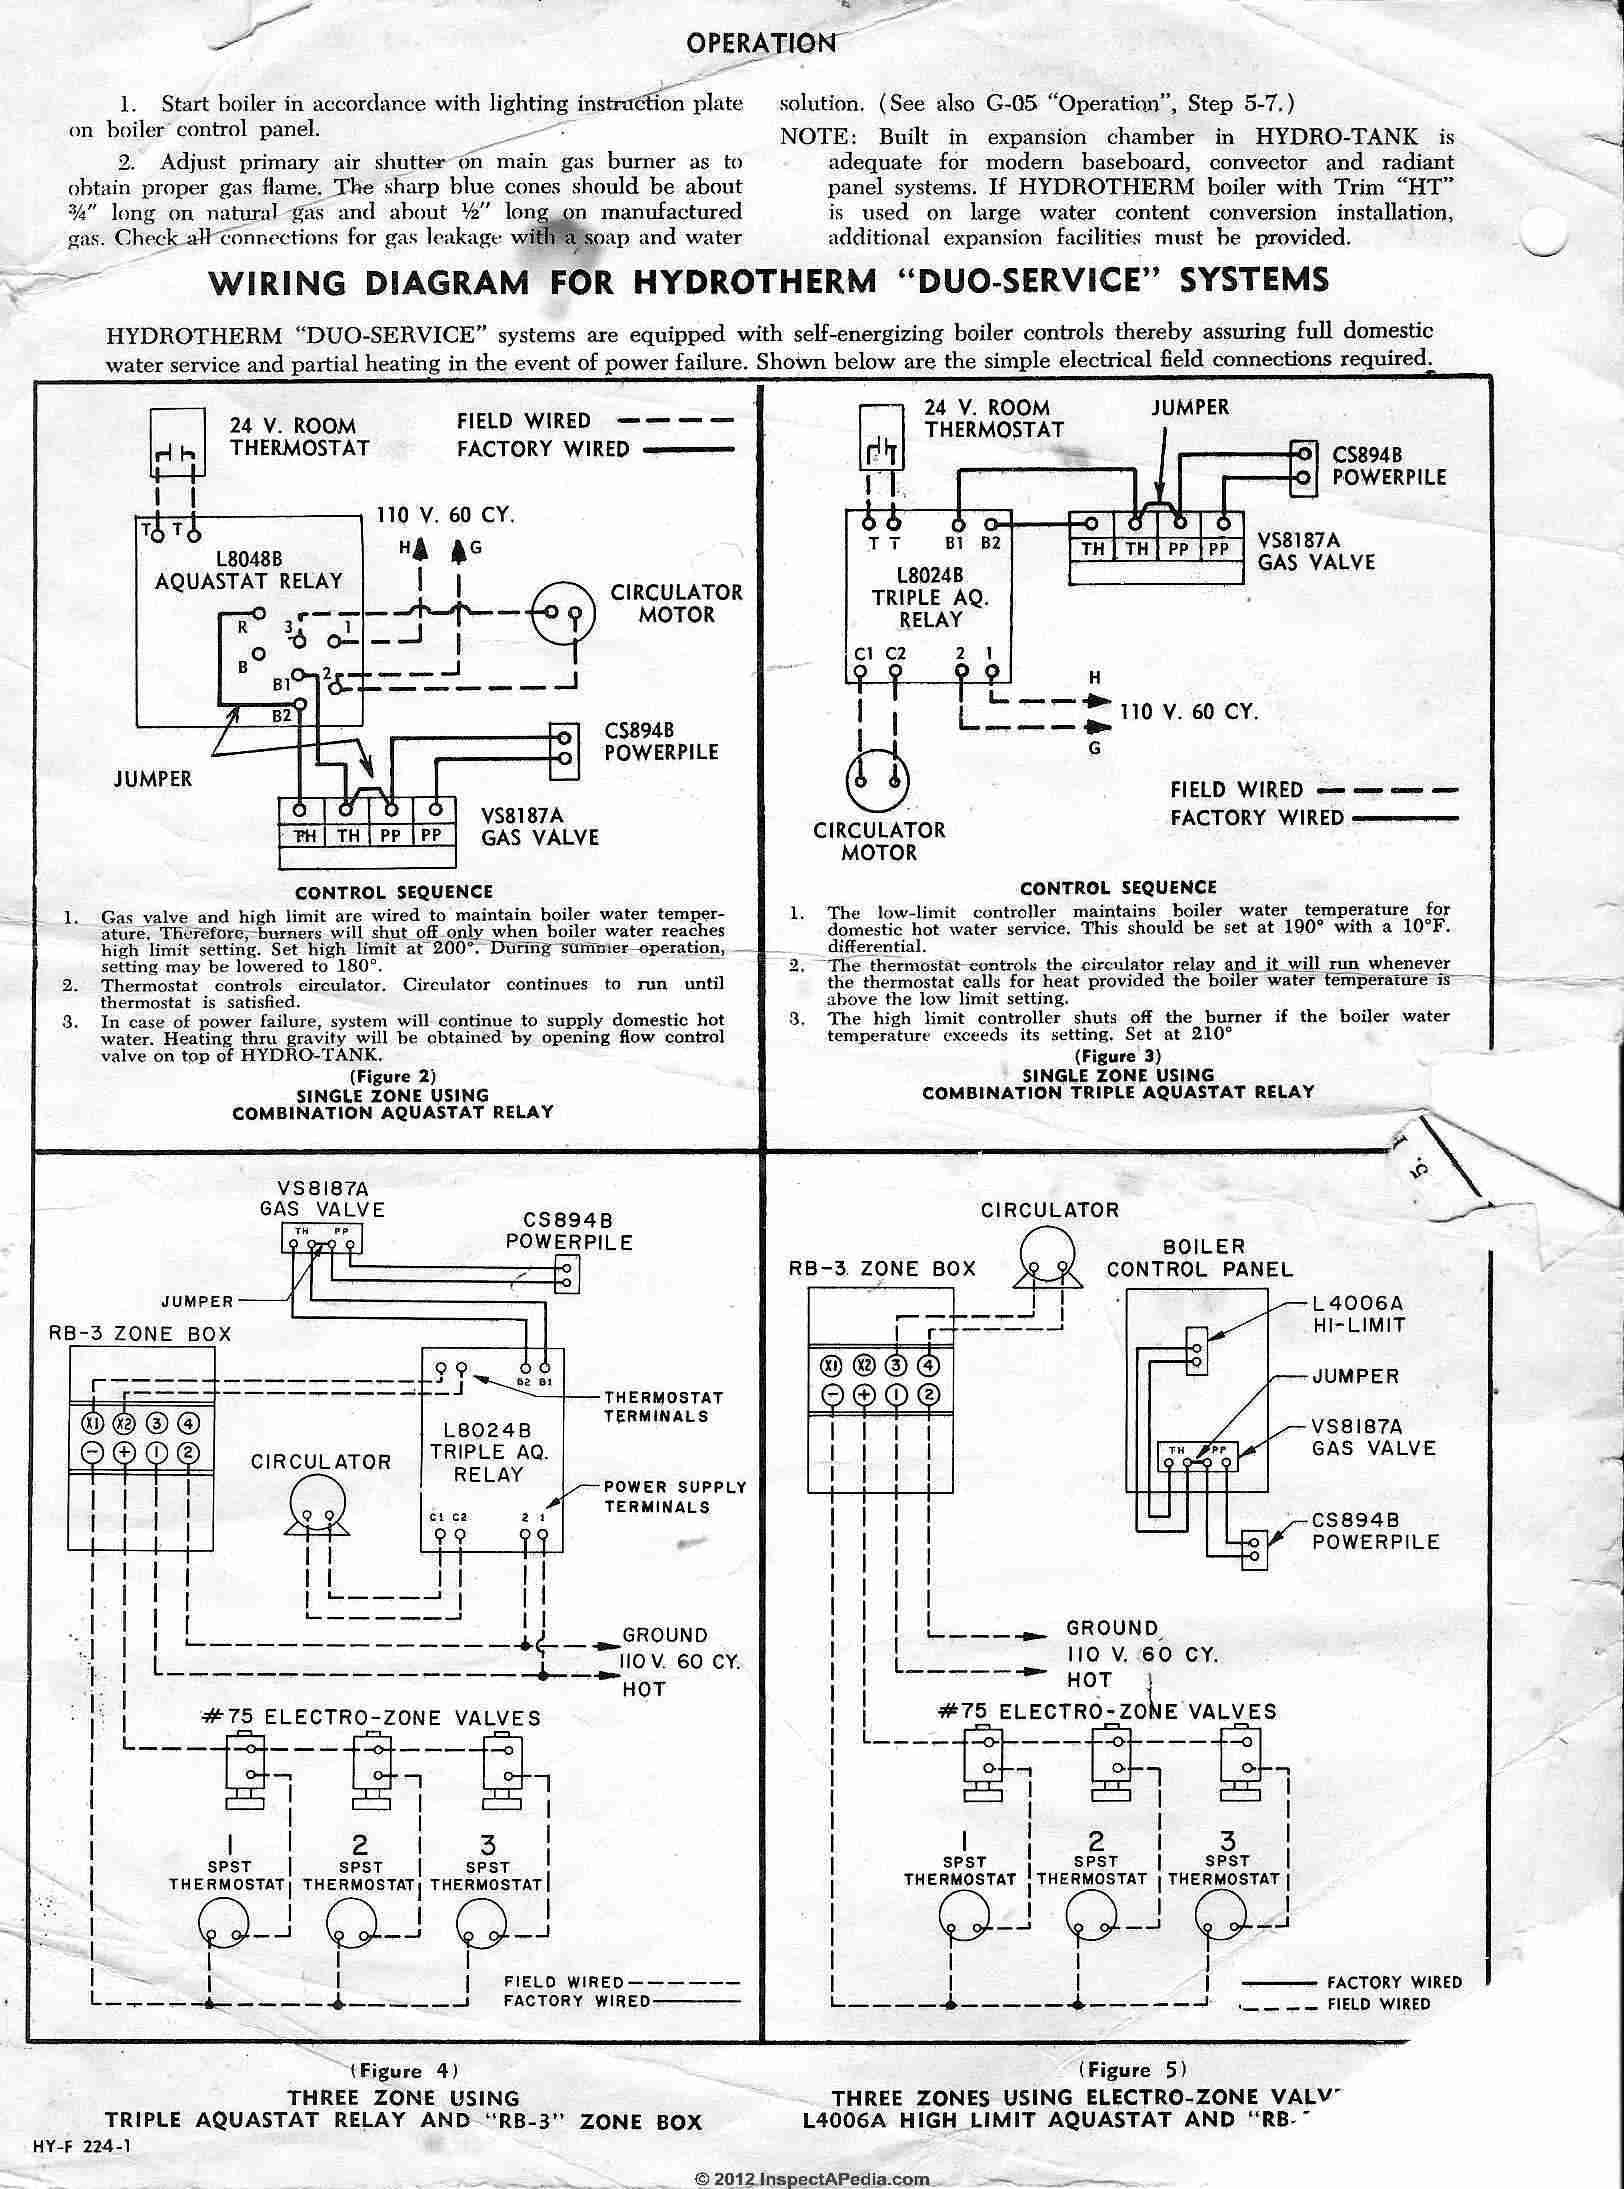 Amtrol Wiring Diagram Archive Of Automotive Fleetwood Excursion Heating Boiler Aquastat Control Diagnosis Troubleshooting Repair Rh Inspectapedia Com